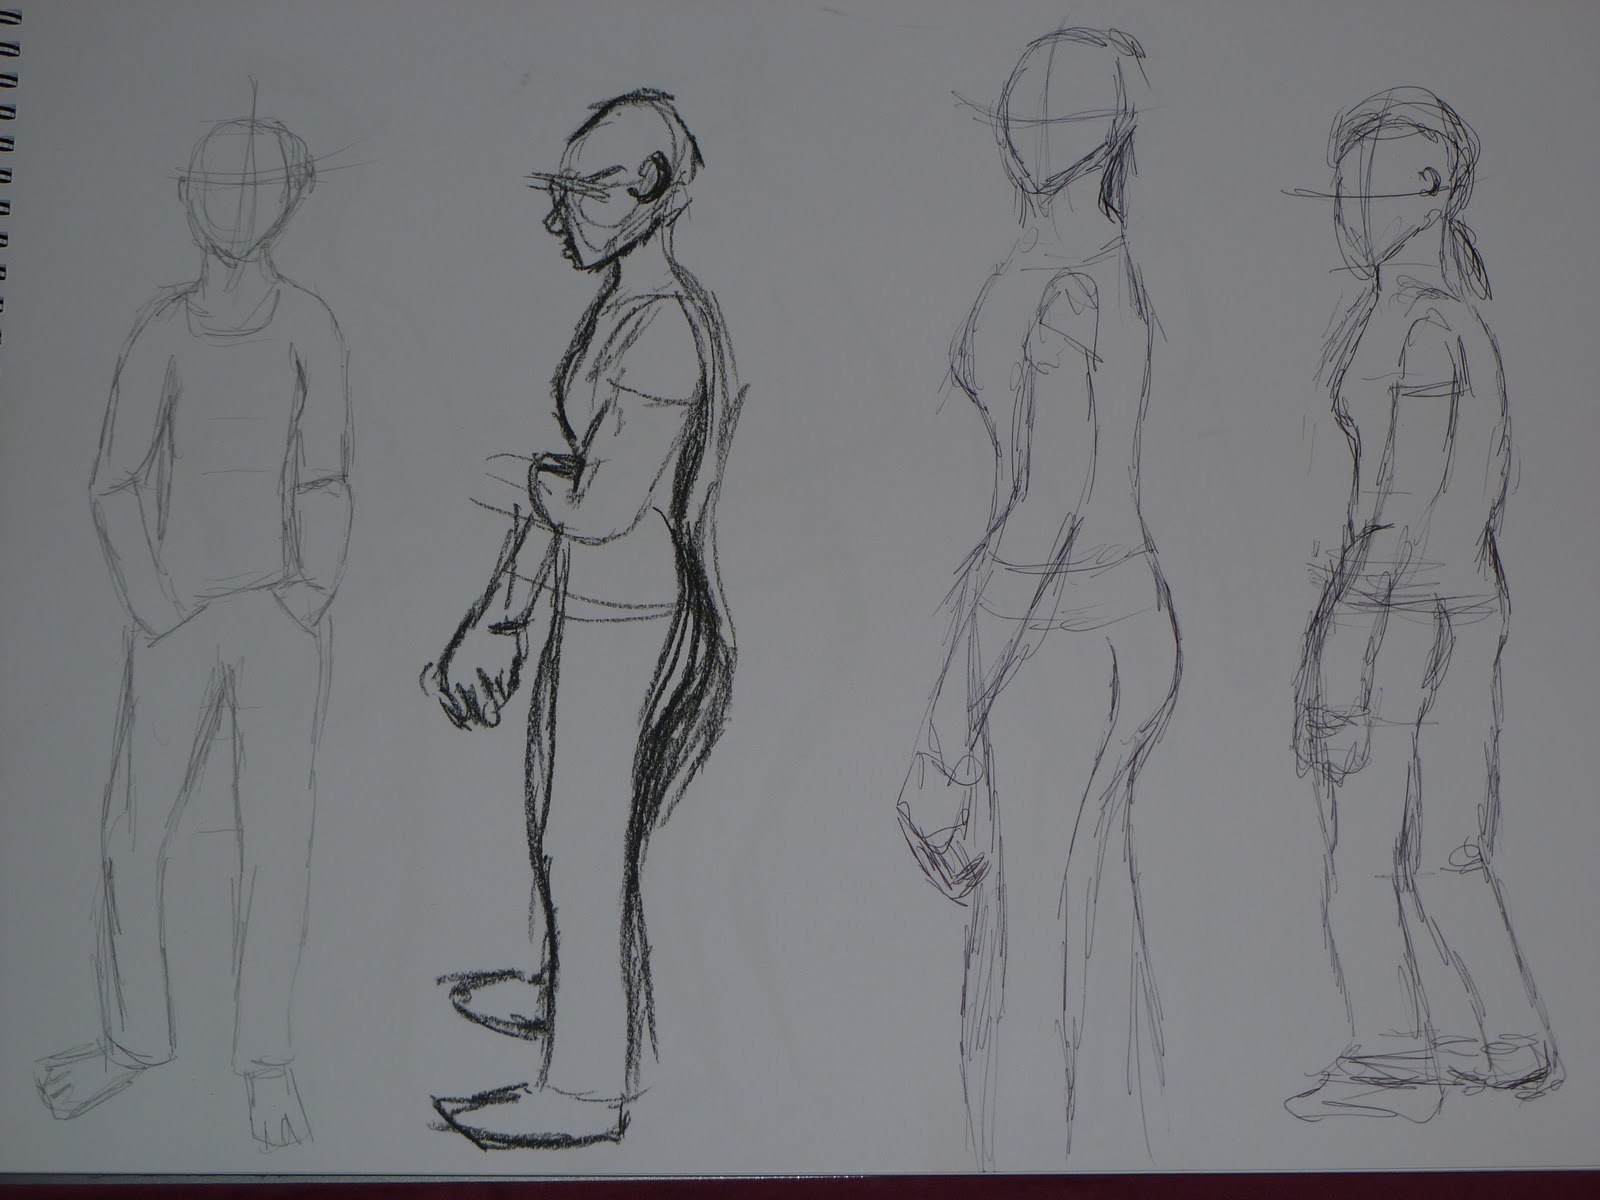 learning log  after my attempts to draw inanimate objects i have been moved onto figures these are some of my initial sketches done to test my perspective of figures